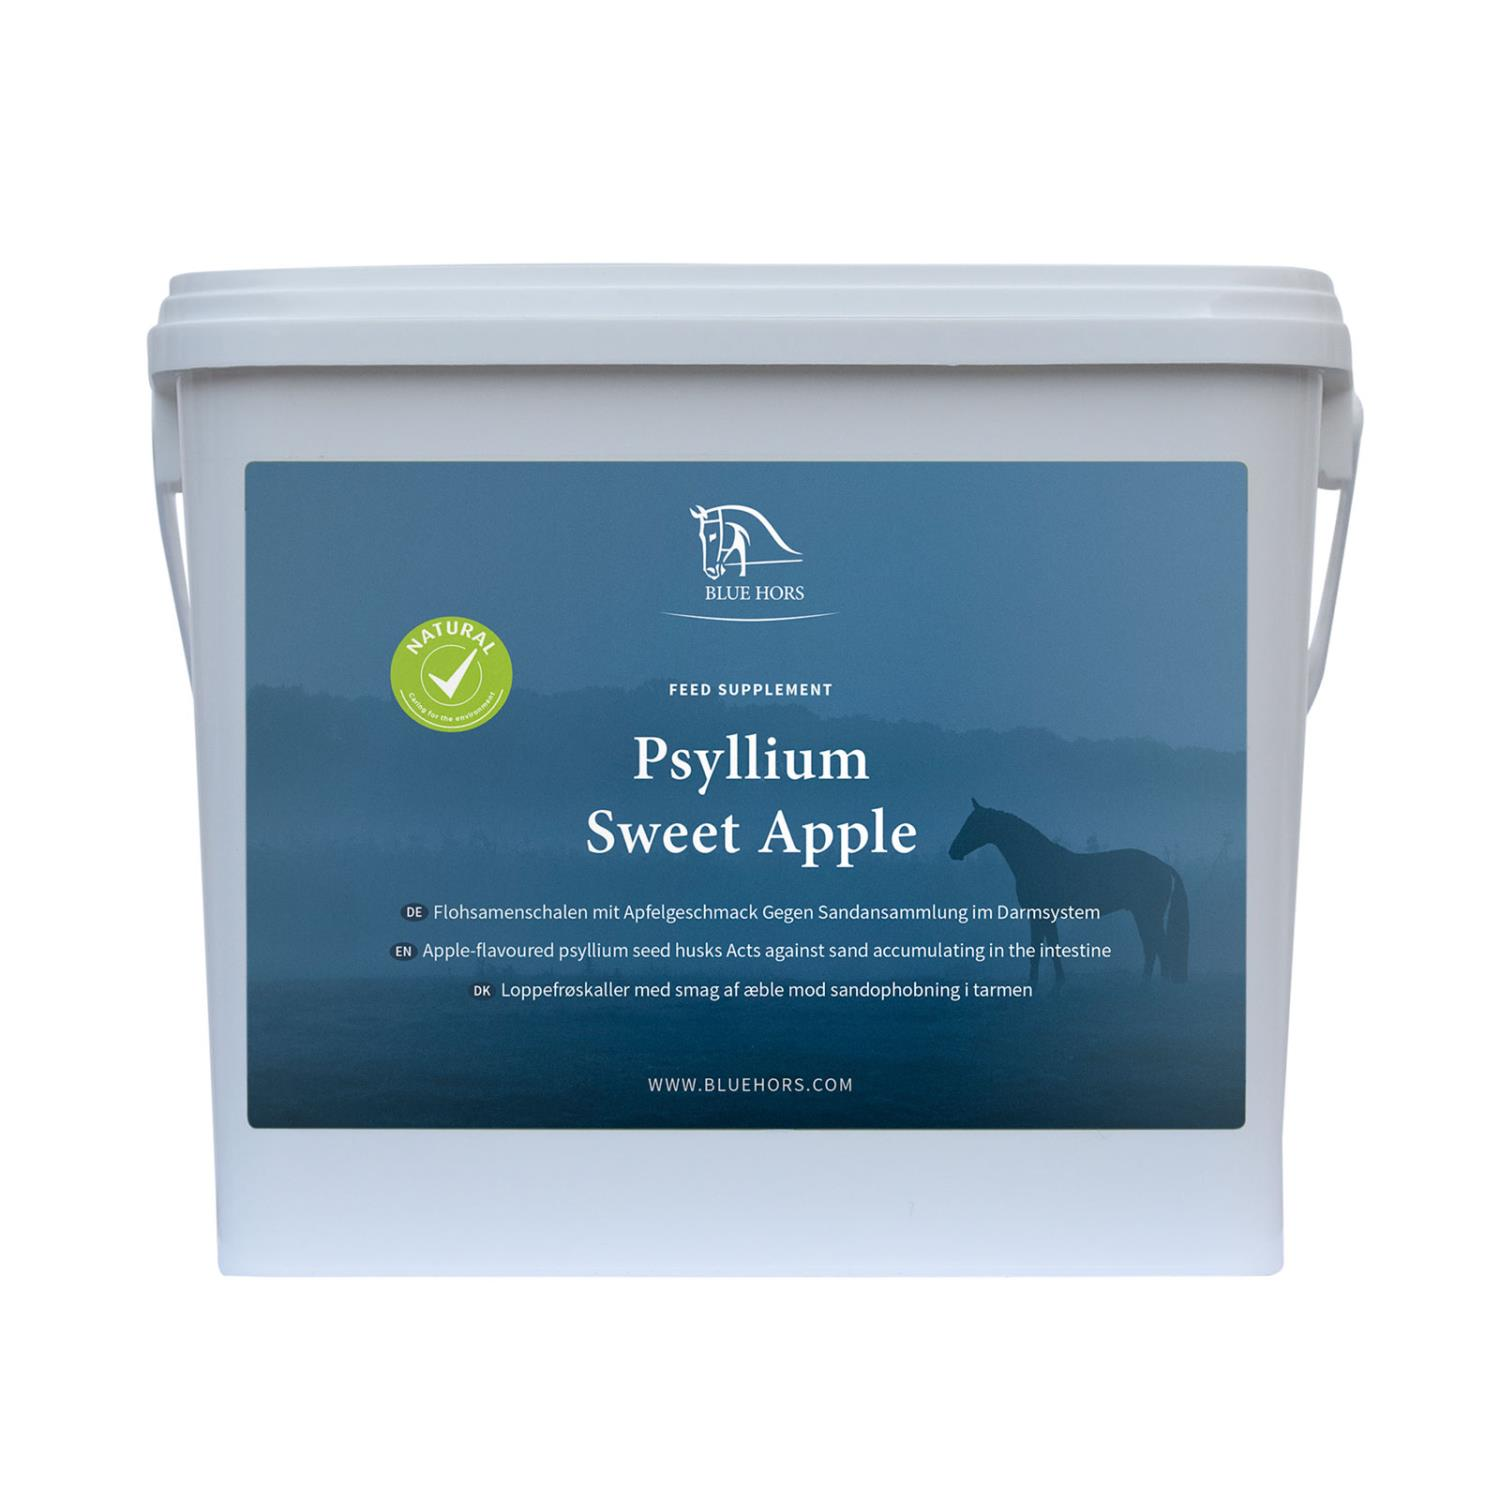 Blue Hors Psyllium sweet appla